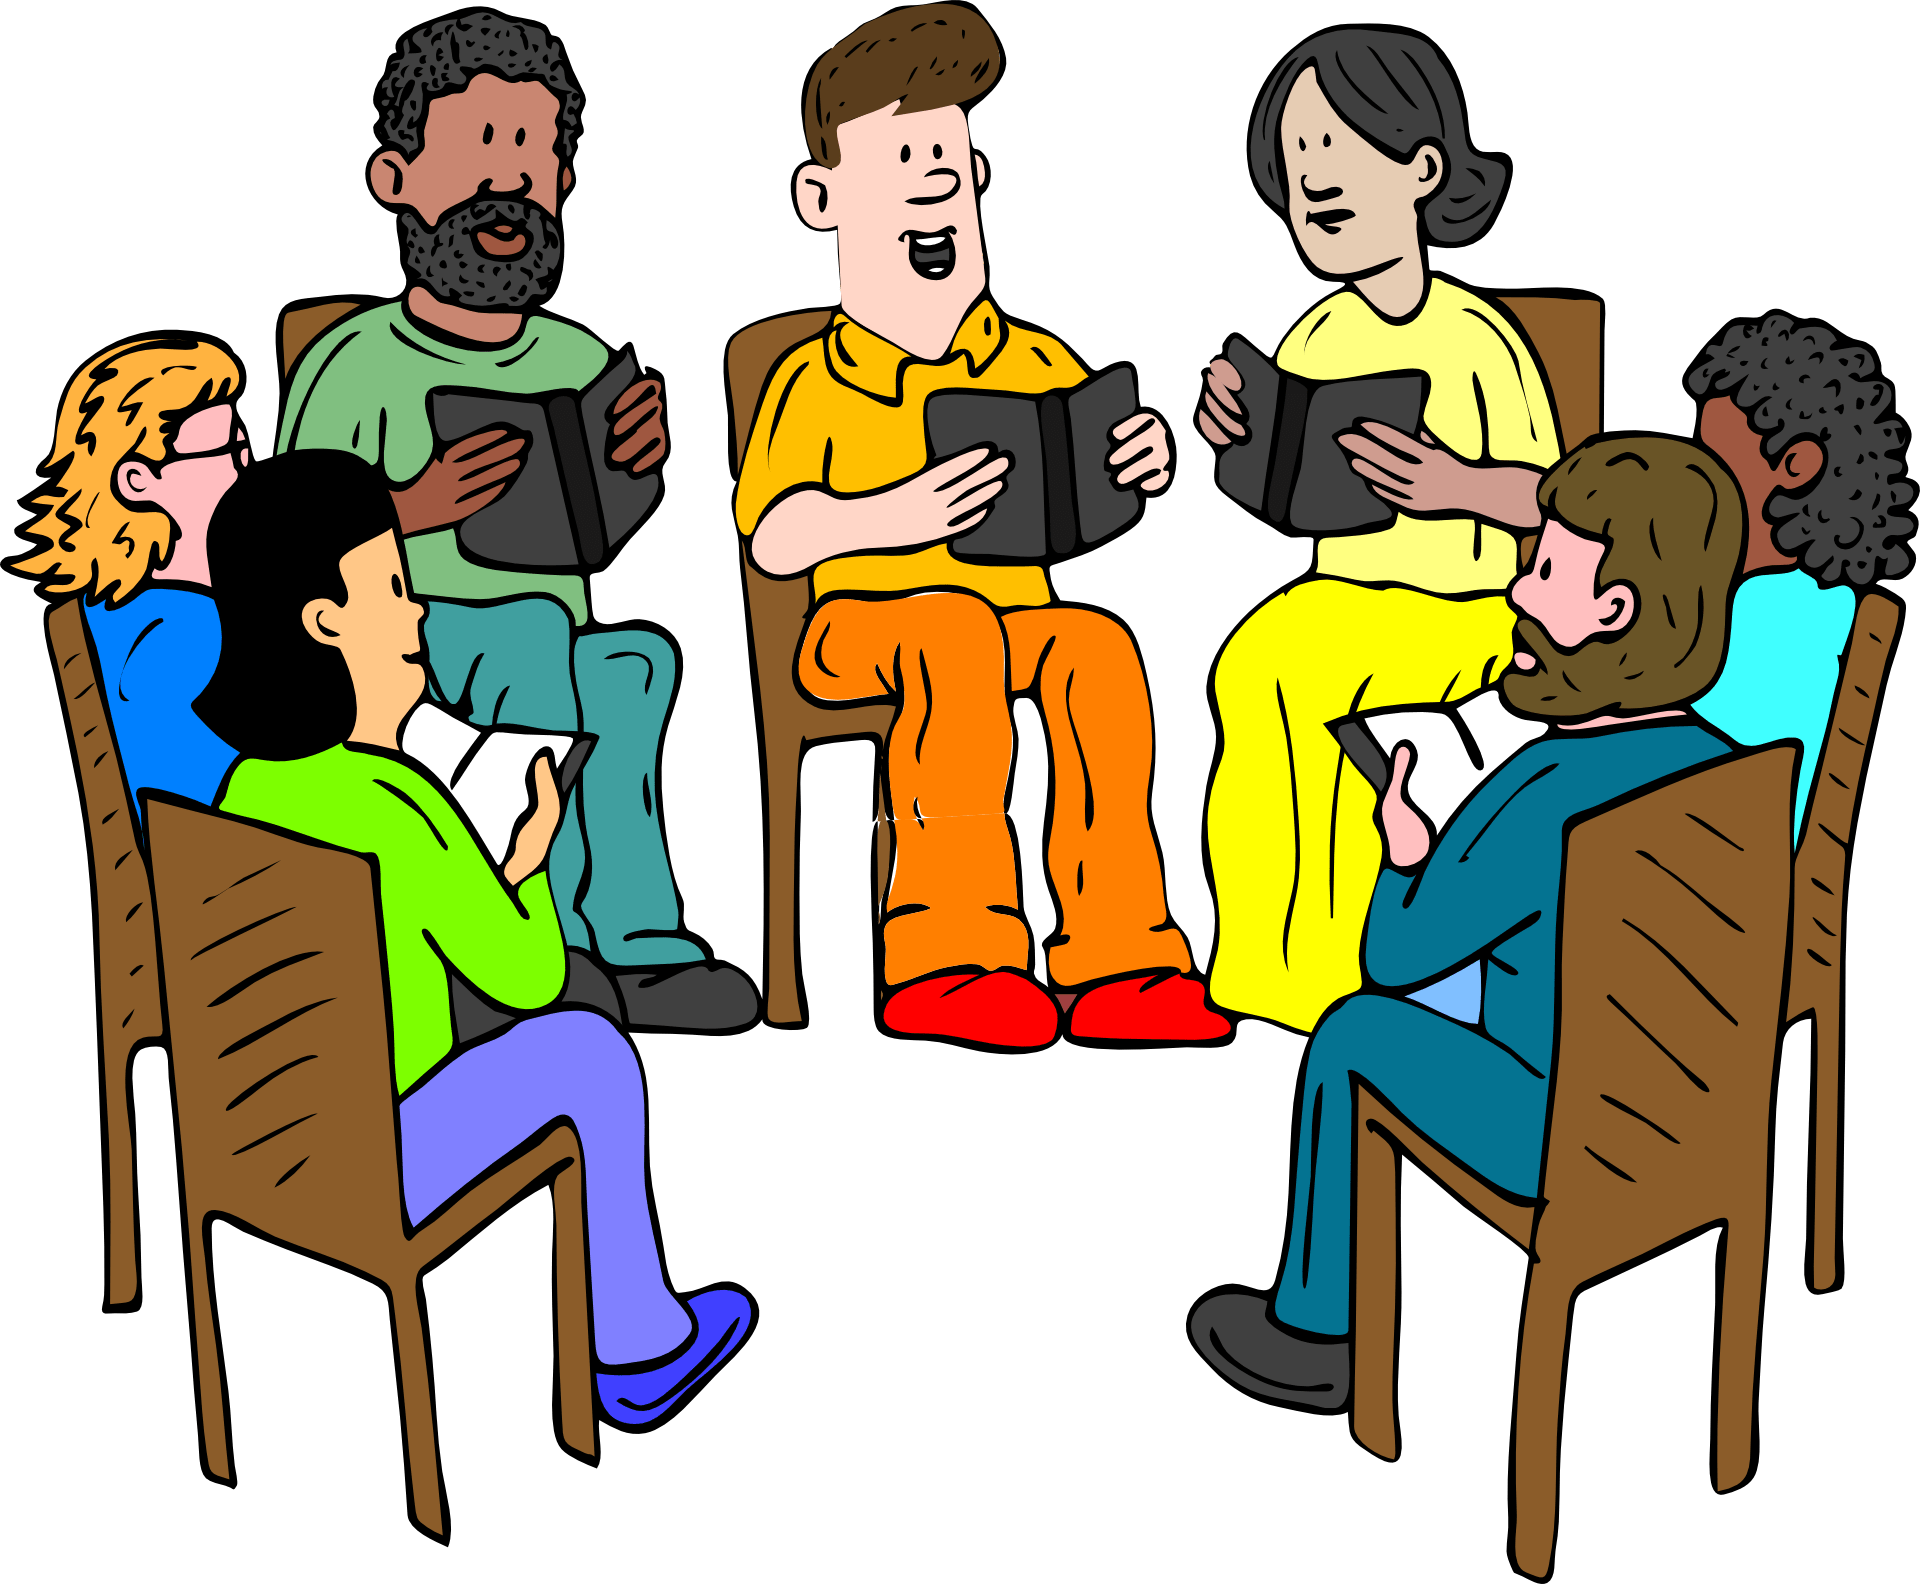 July club sciwri i. Discussion clipart cell group